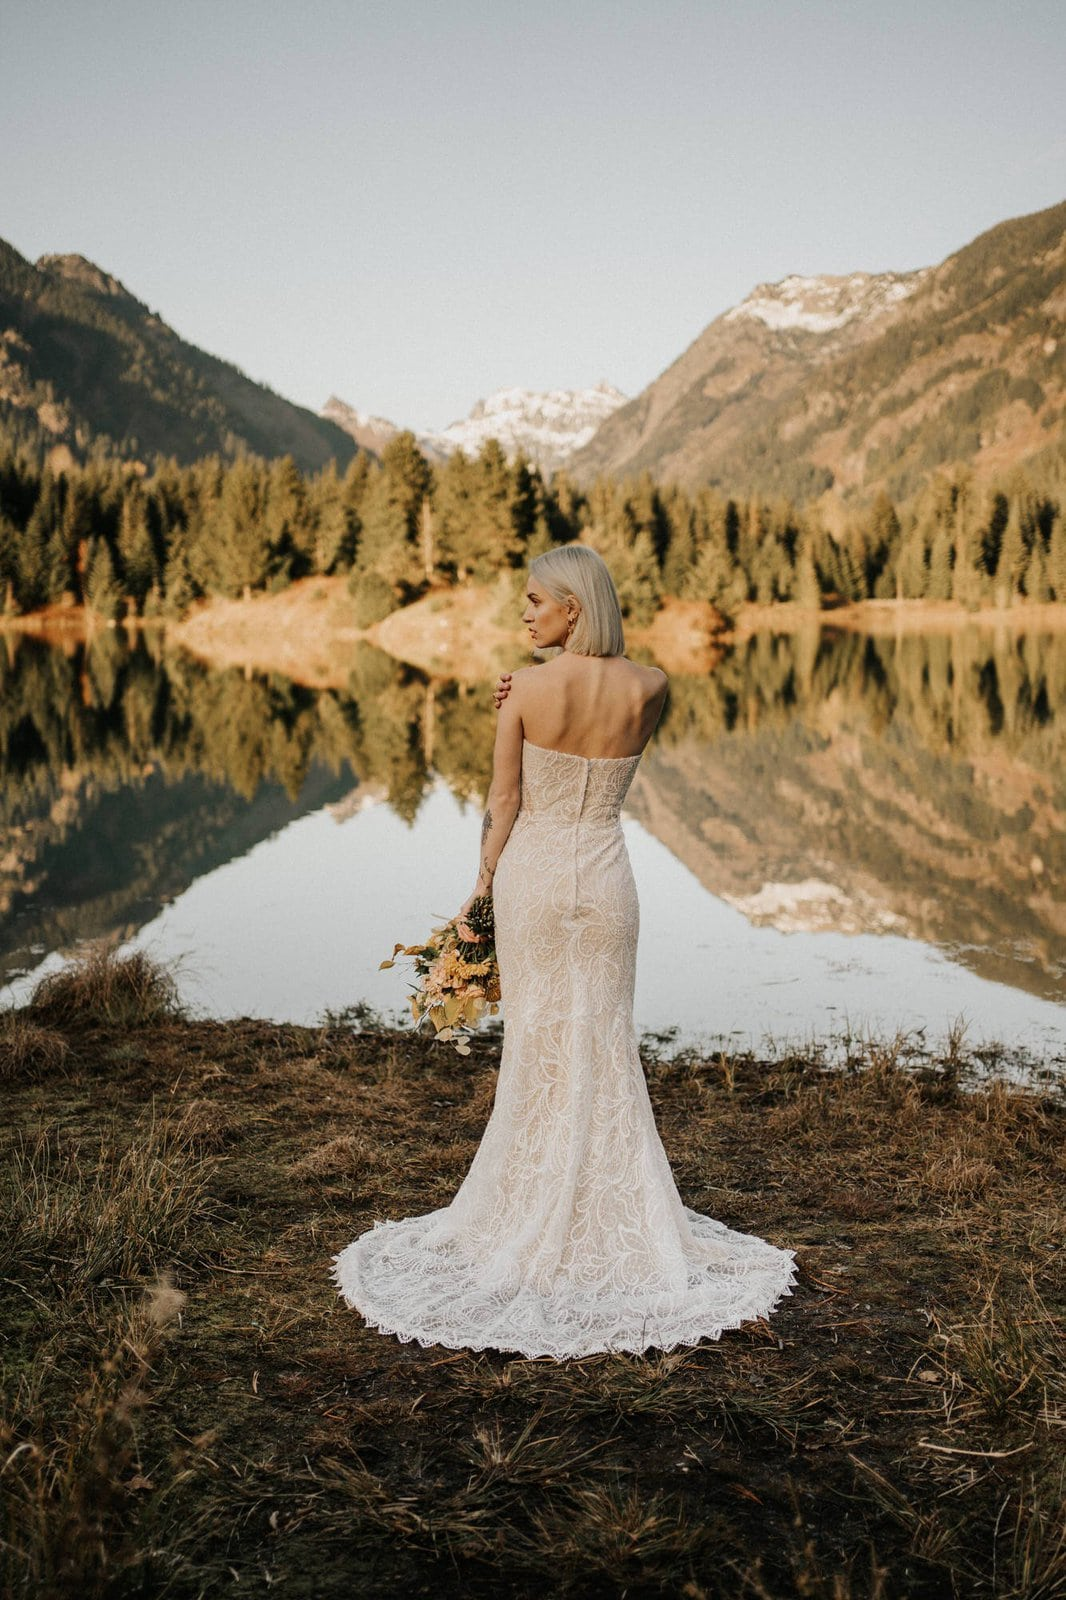 All who wander boho wedding dress.